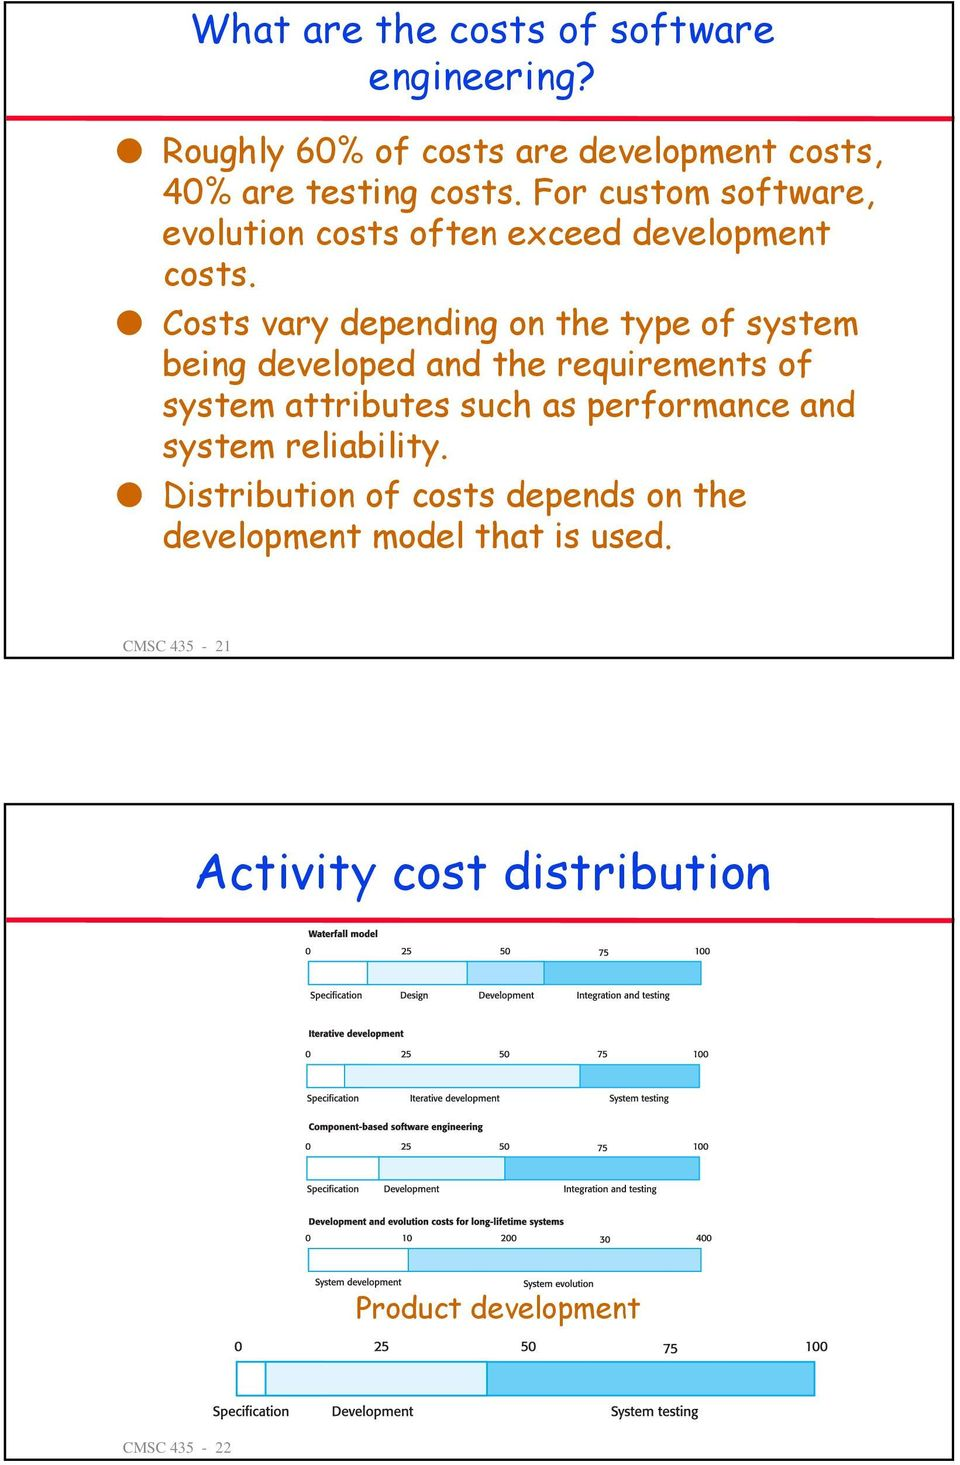 Costs vary depending on the type of system being developed and the requirements of system attributes such as